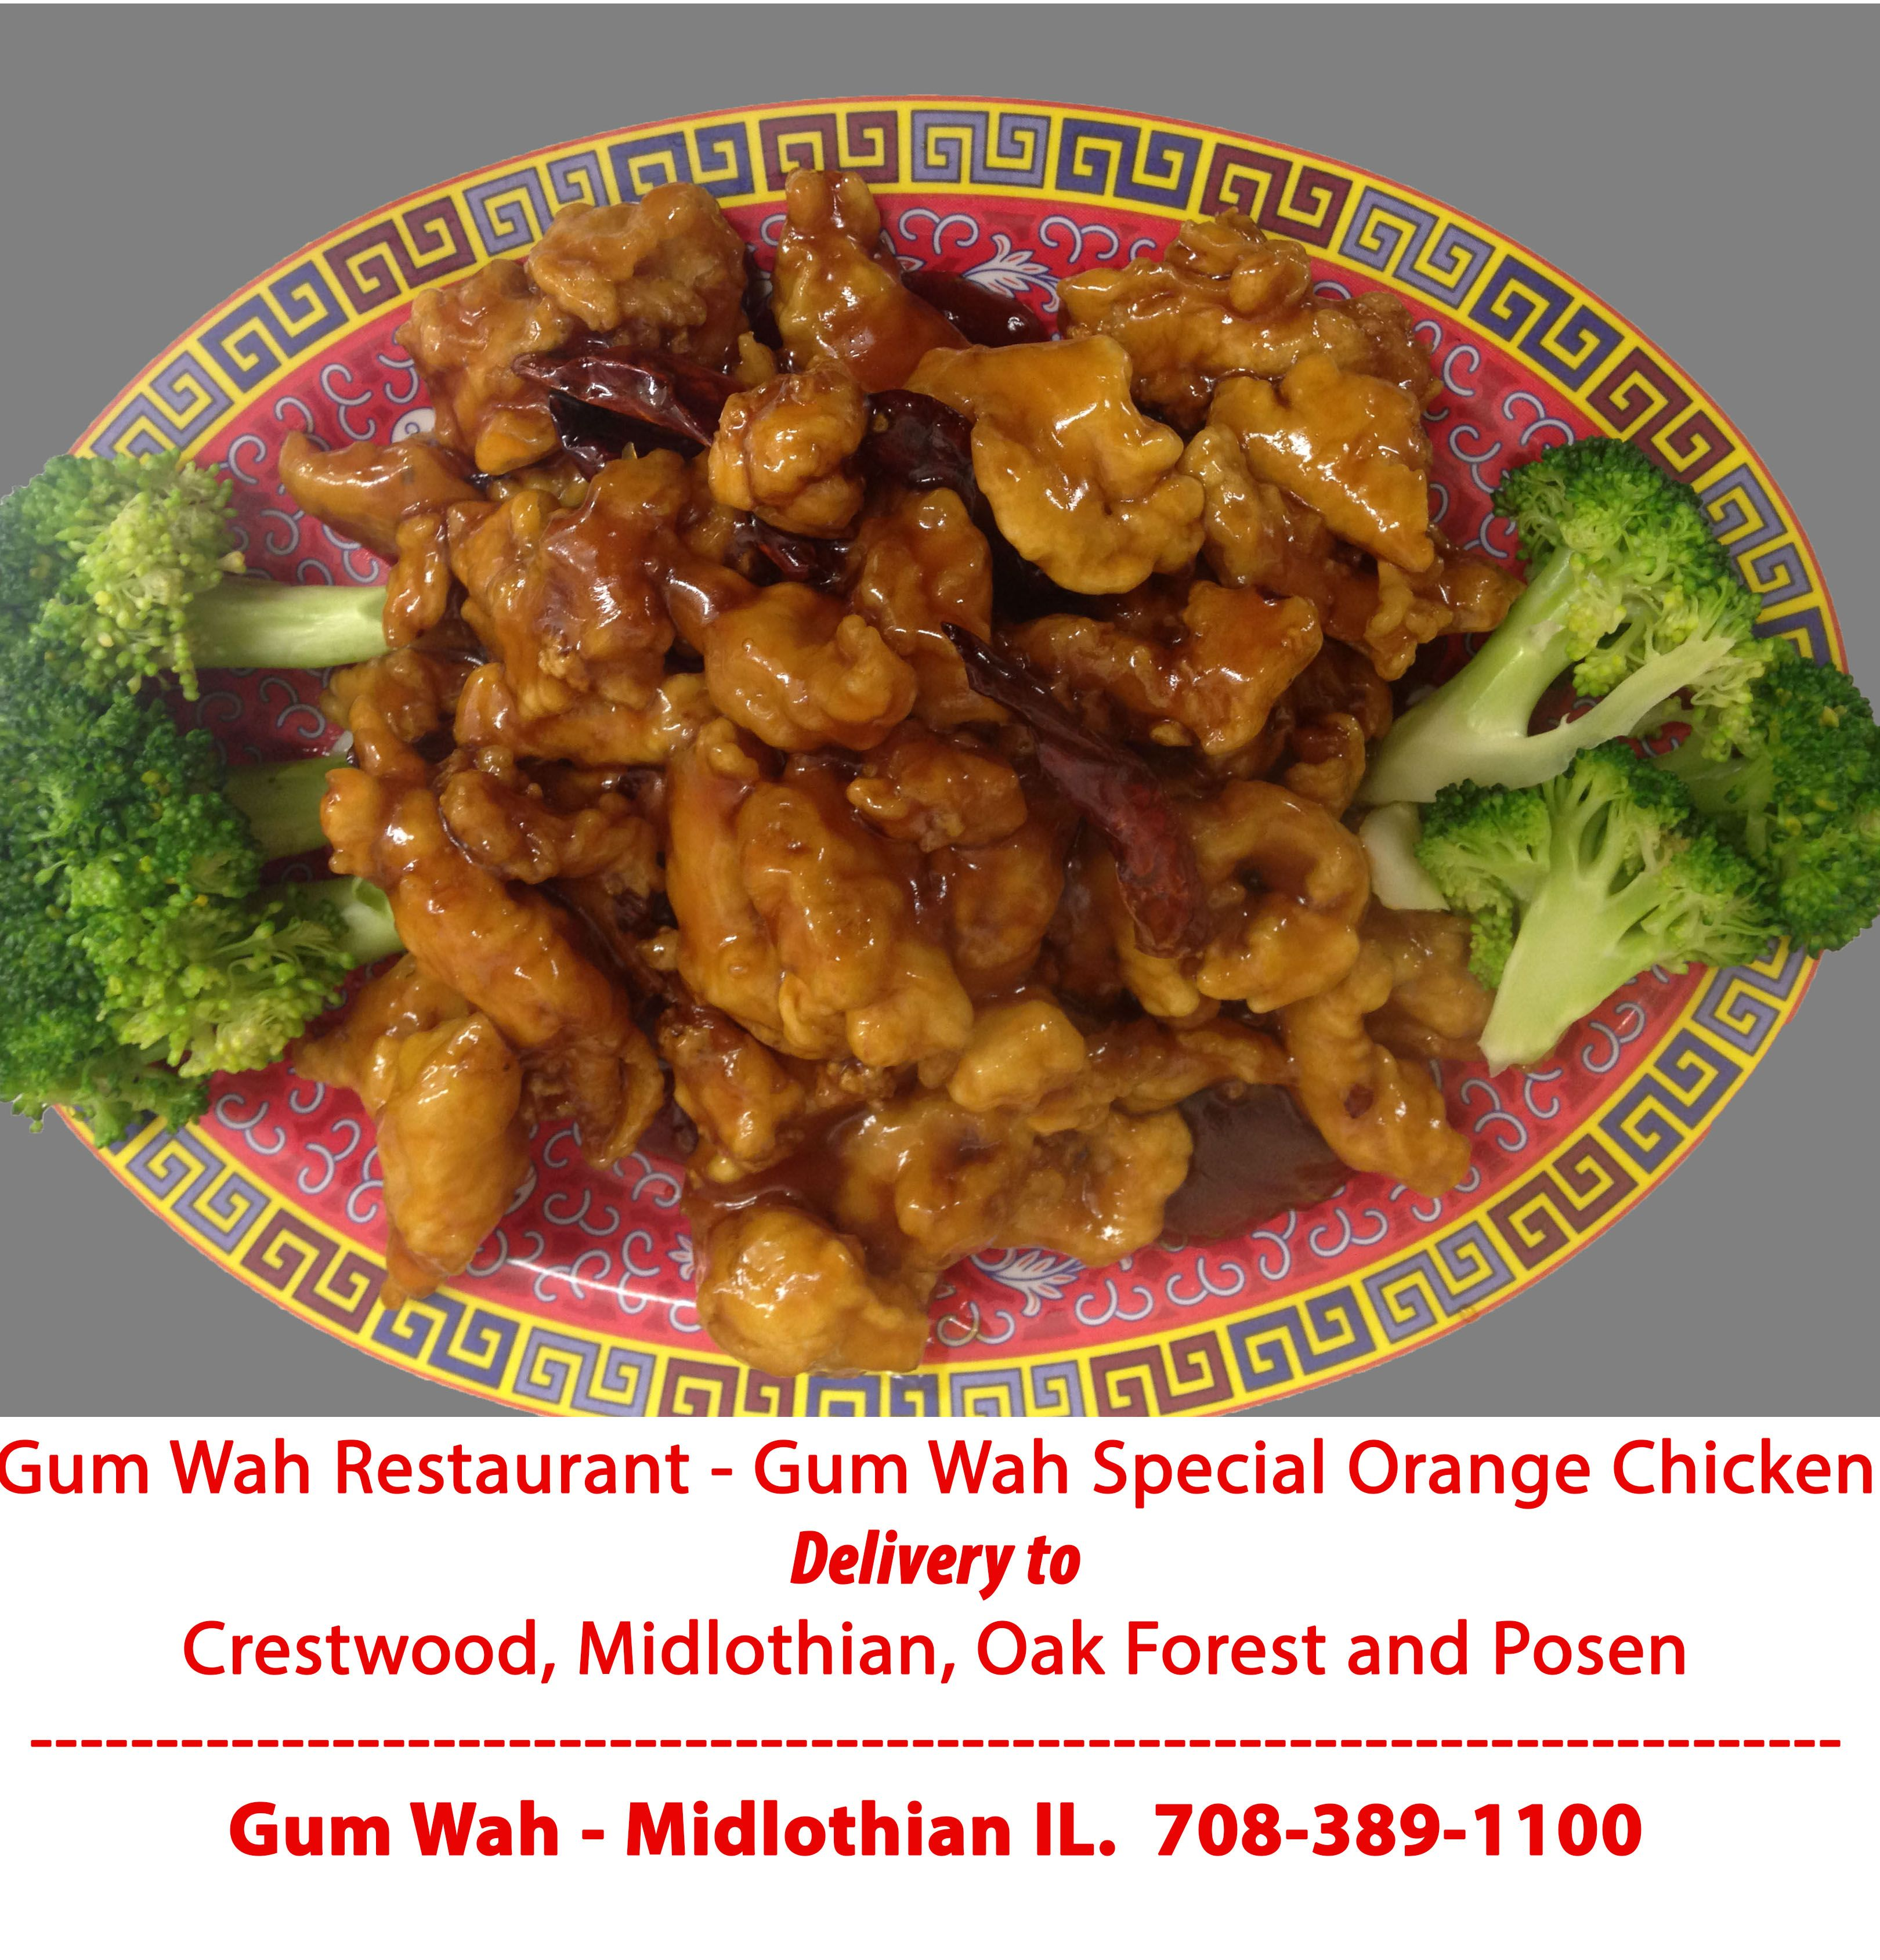 The Best Chinese Food In Midlothian Illinois Gum Wah Restaurant Delivery